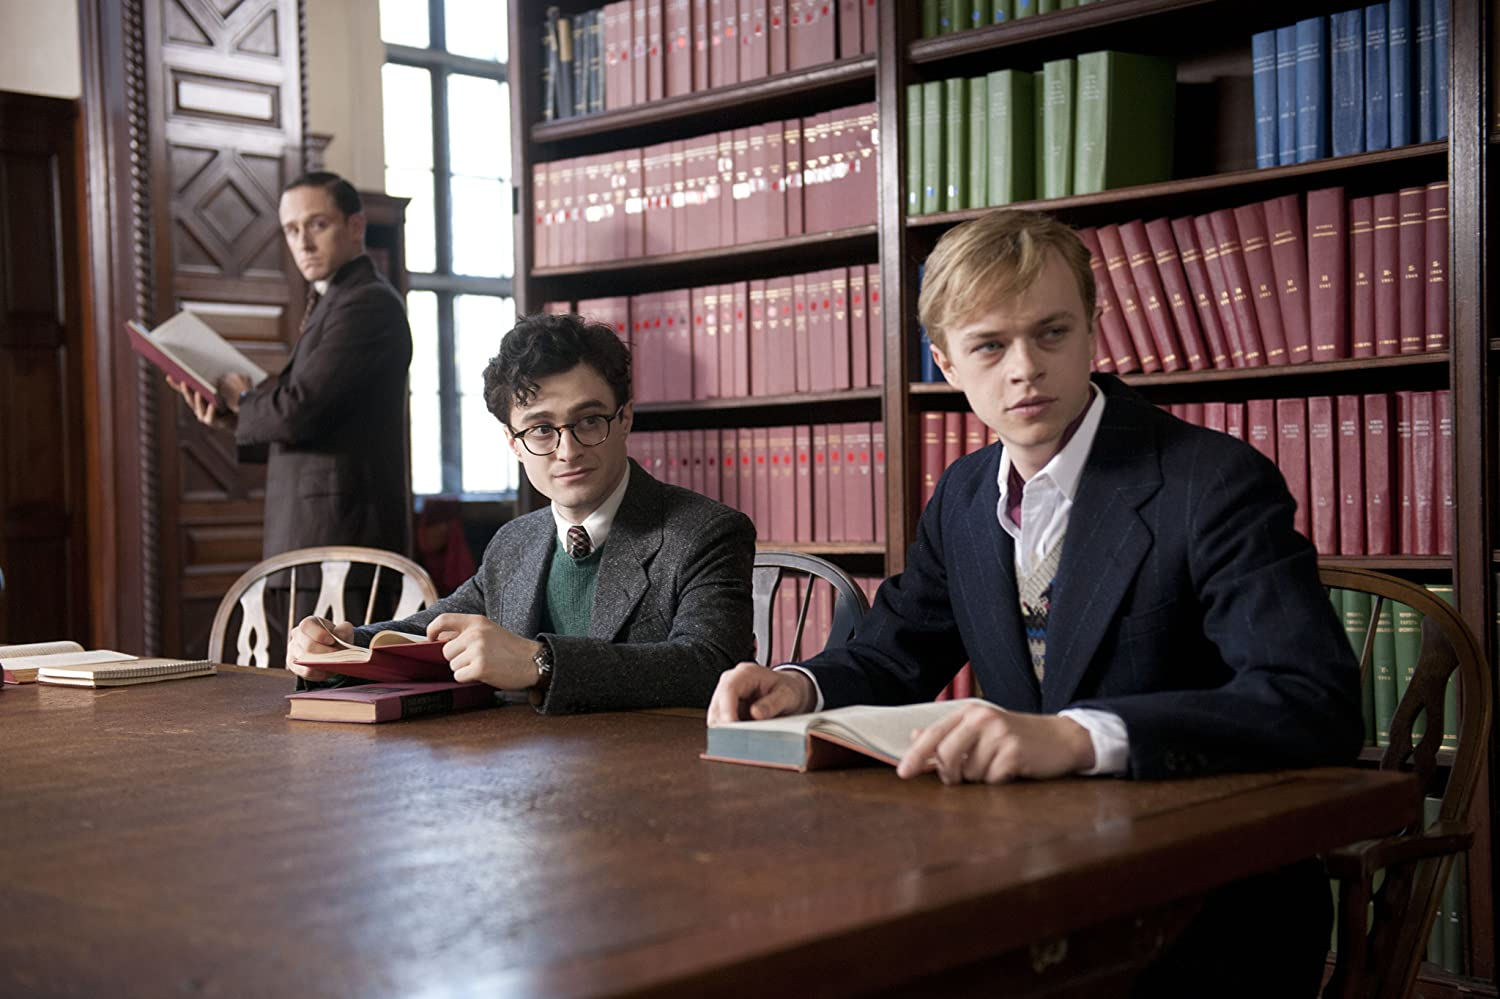 Ben Foster, Daniel Radcliffe, and Dane DeHaan in Kill Your Darlings (2013)